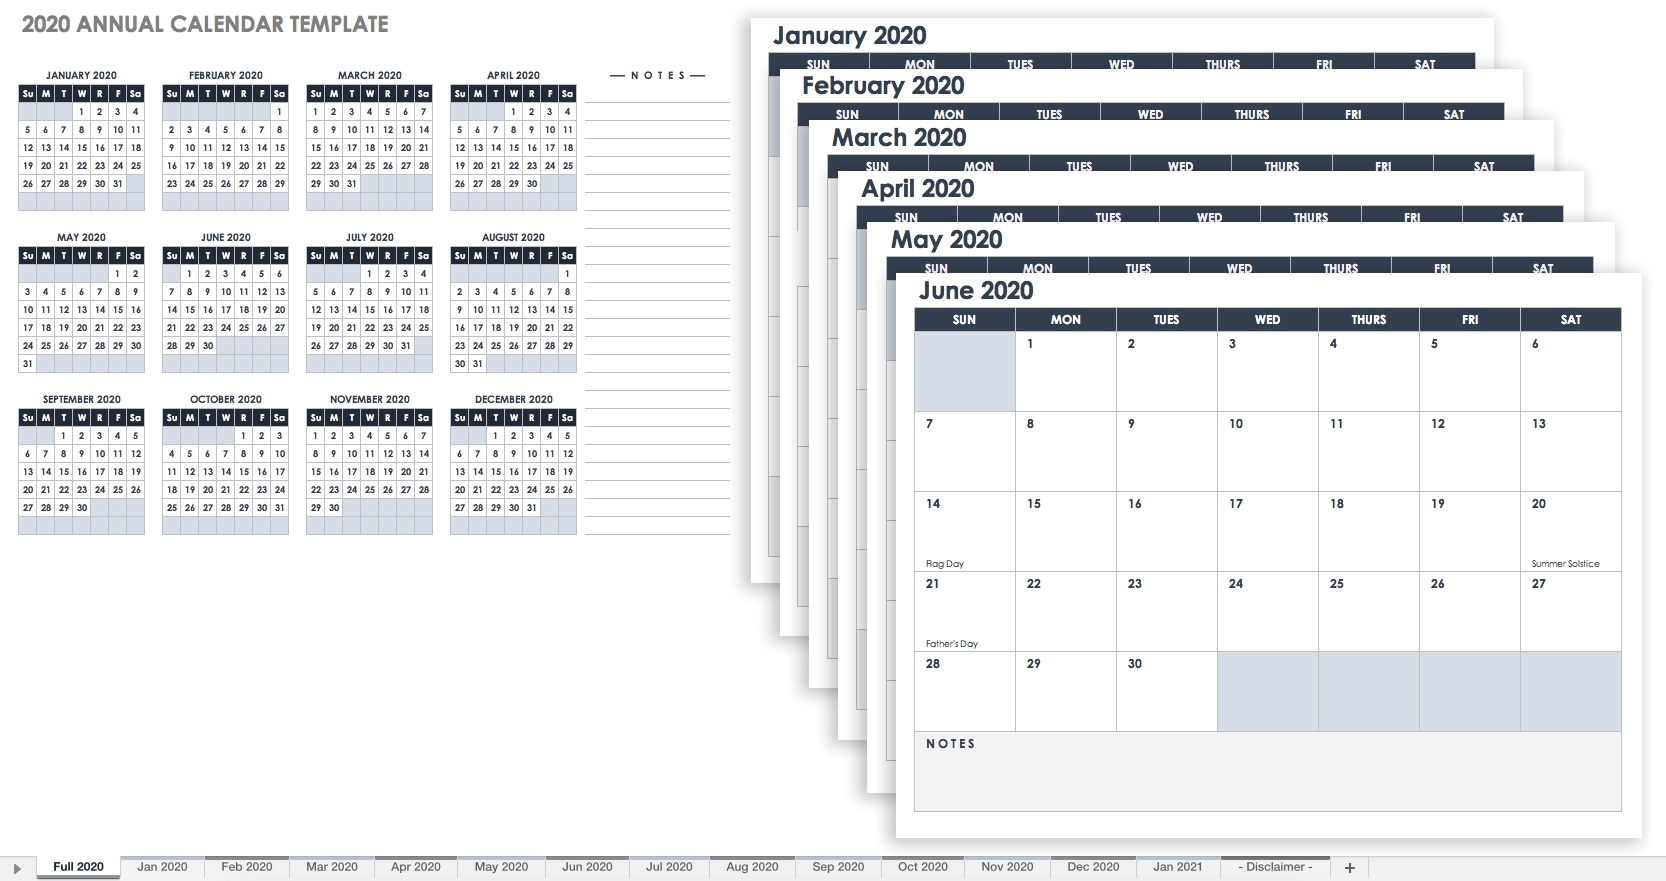 Free Blank Calendar Templates - Smartsheet within Blank Calendar With Only Weekdays